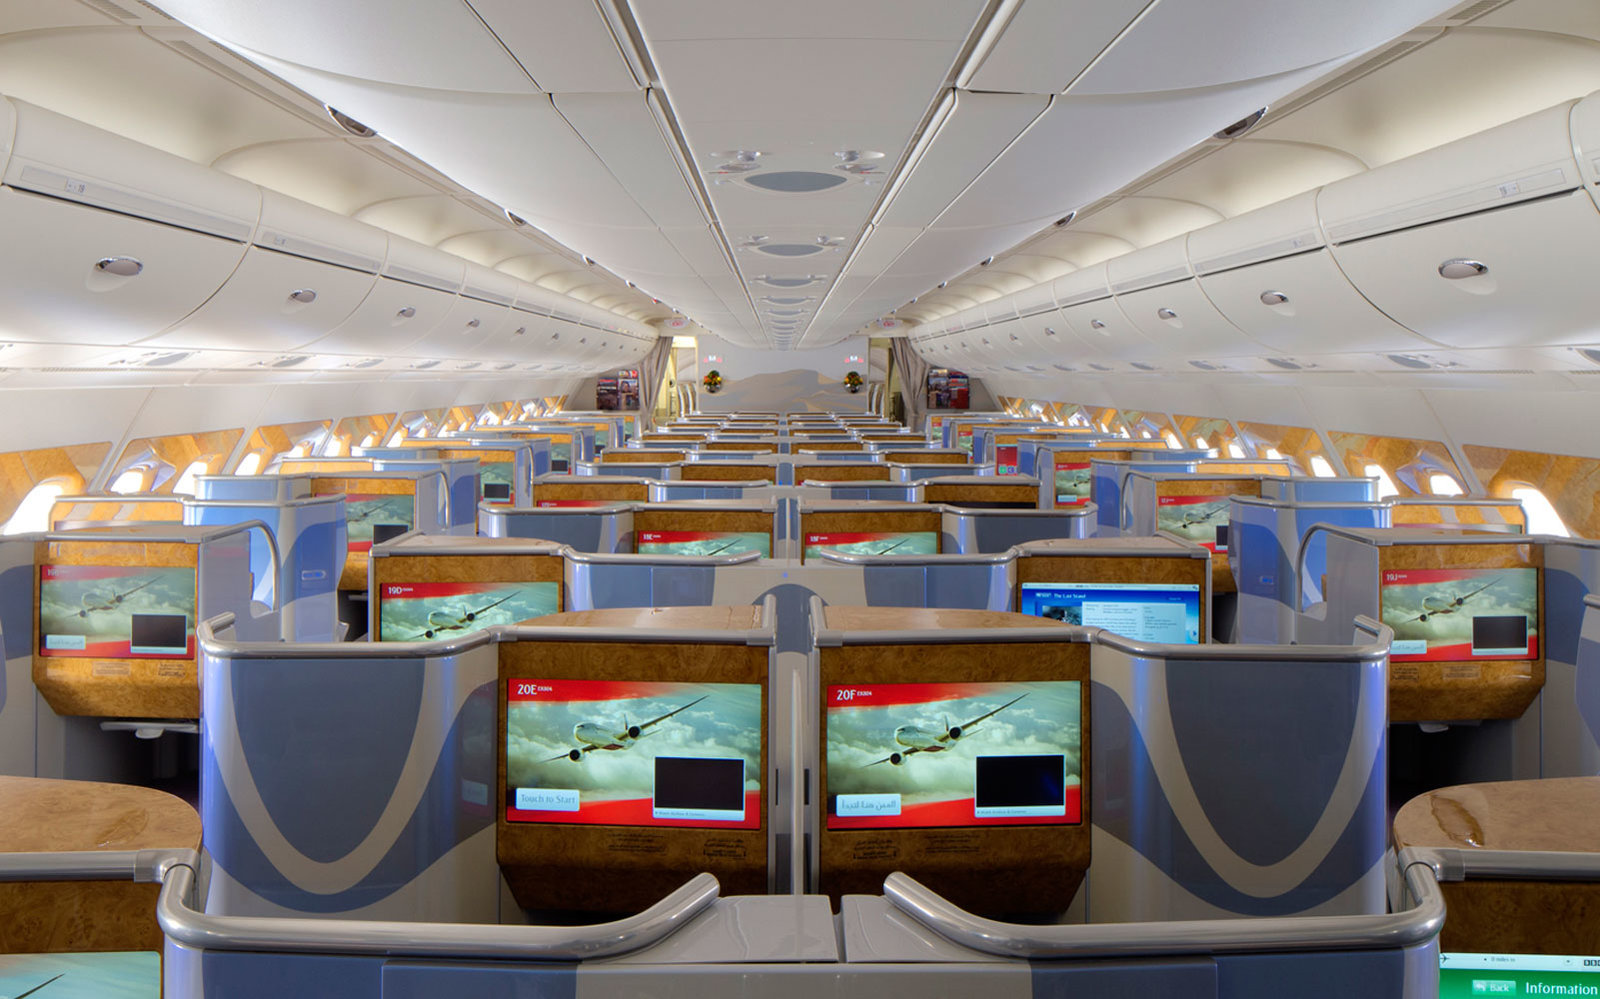 Private Jet With Bedroom Inside The Airbus A380 The Biggest Passenger Plane In The